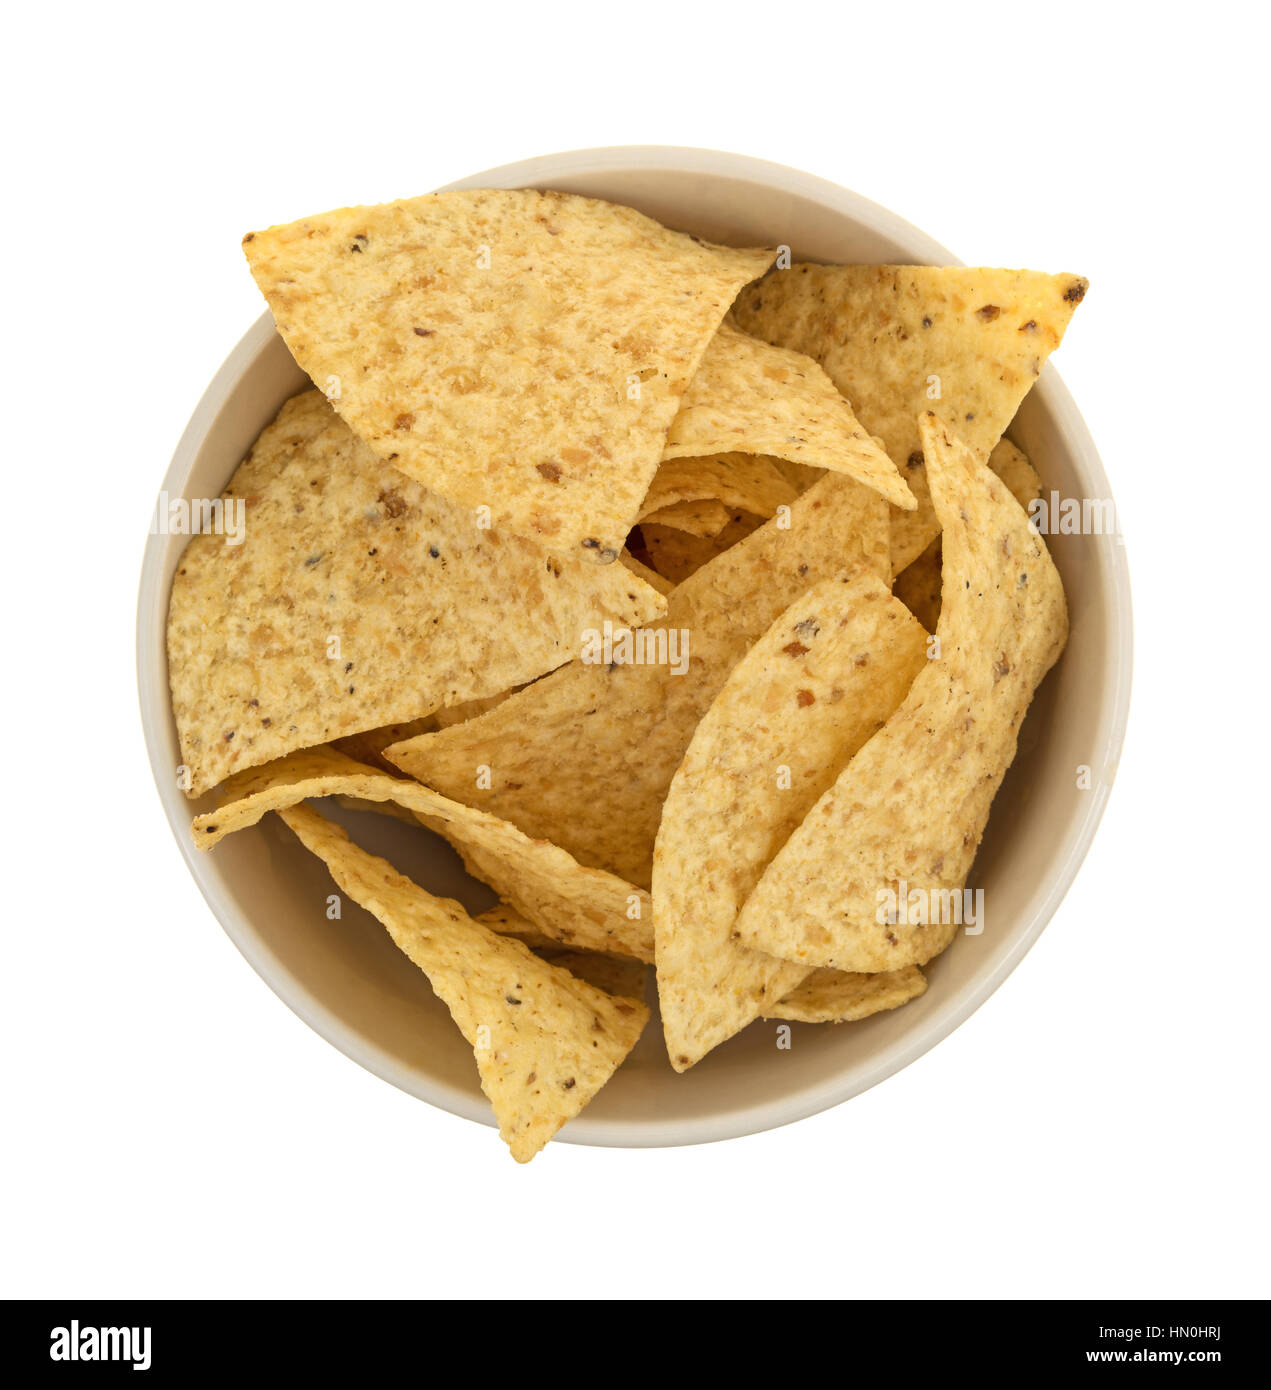 Top view of a bowl filled with crispy tortilla chips isolated on a white background. - Stock Image